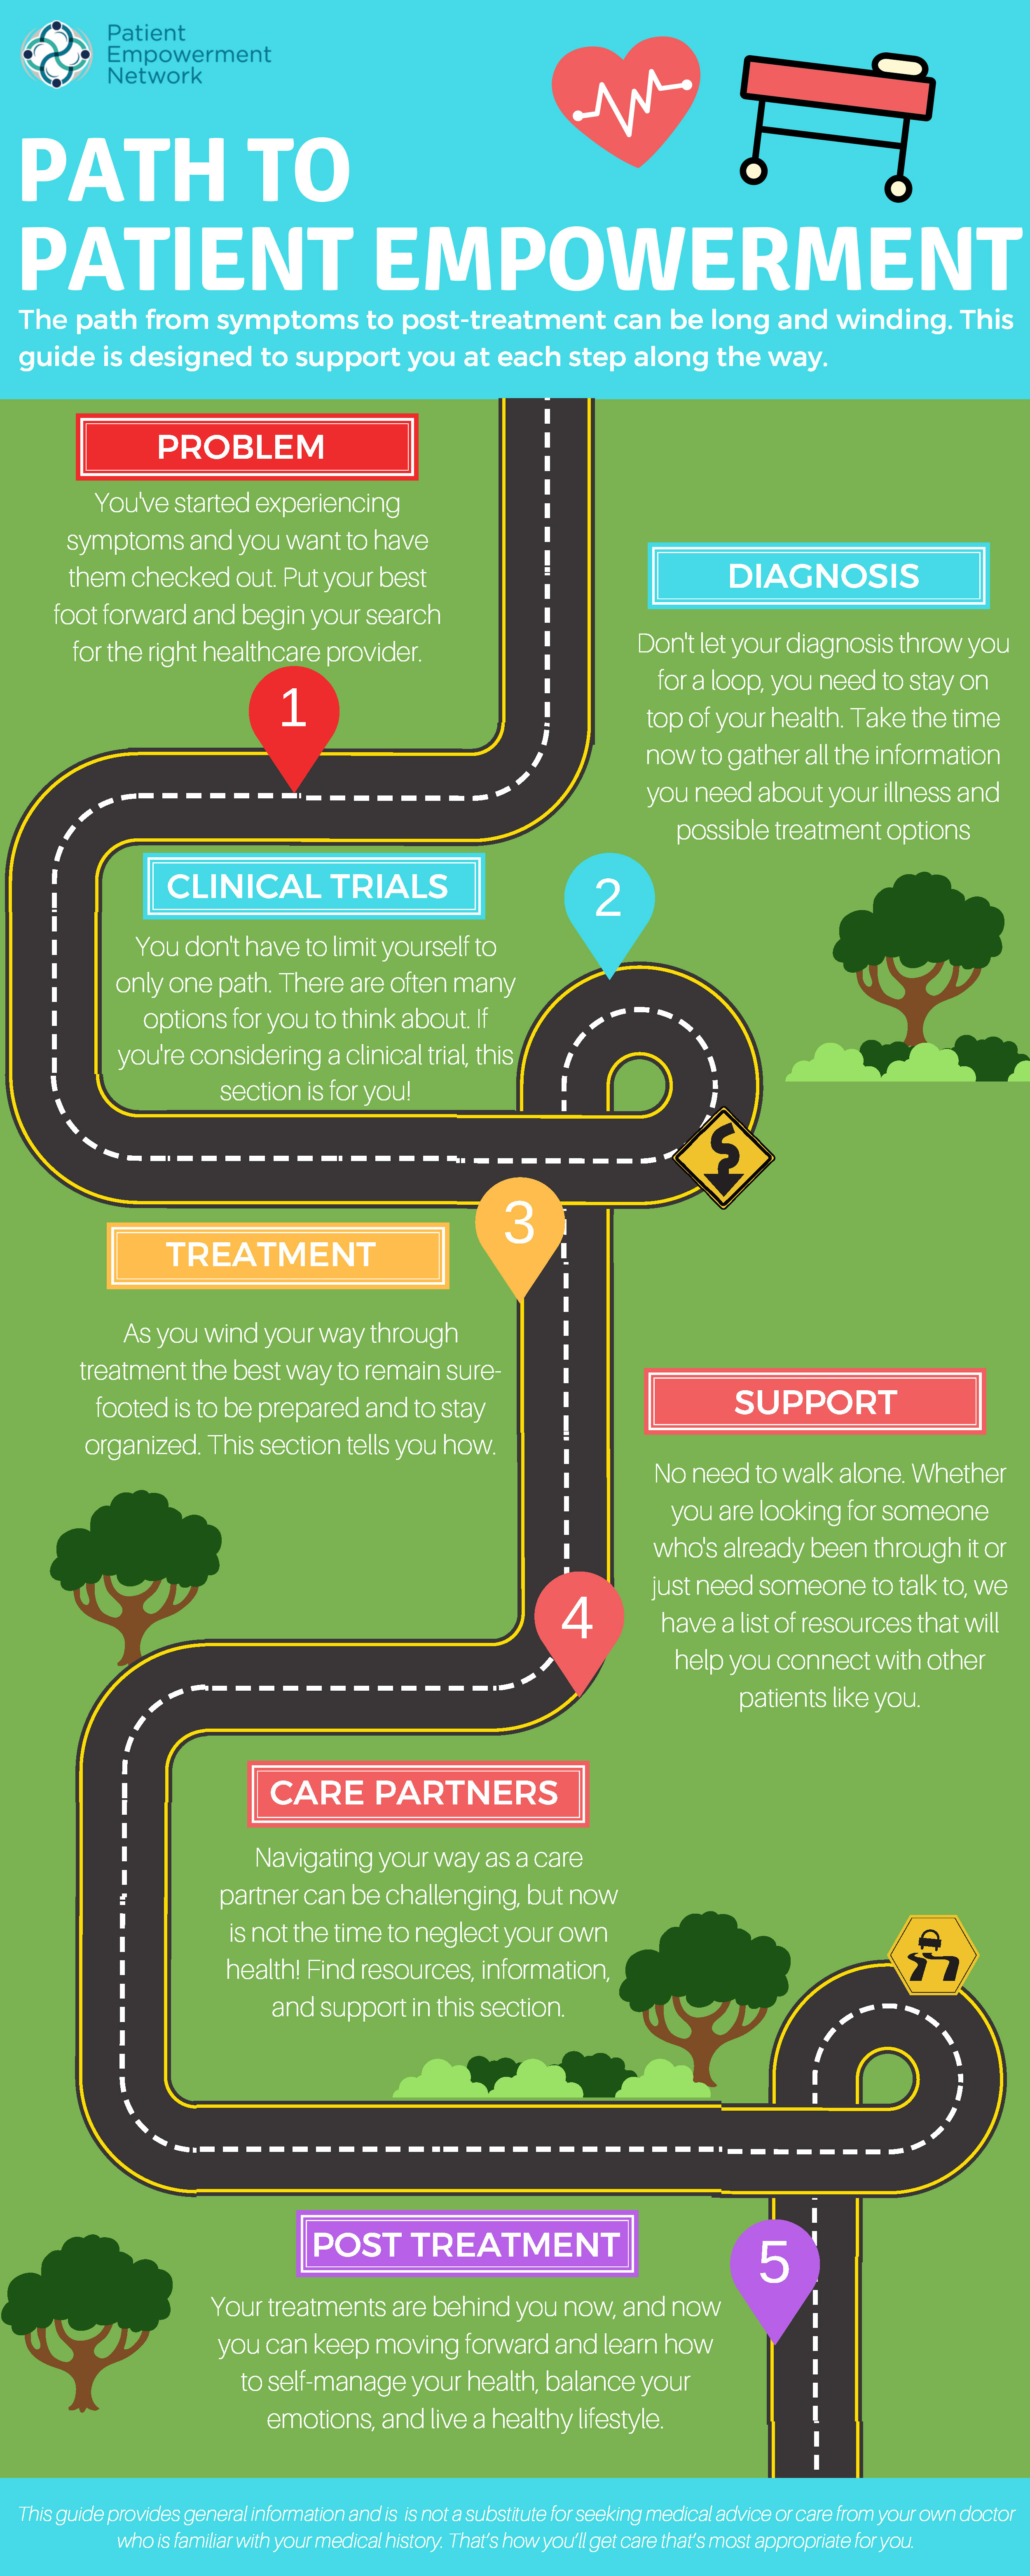 Path to Empowerment Infographic_final